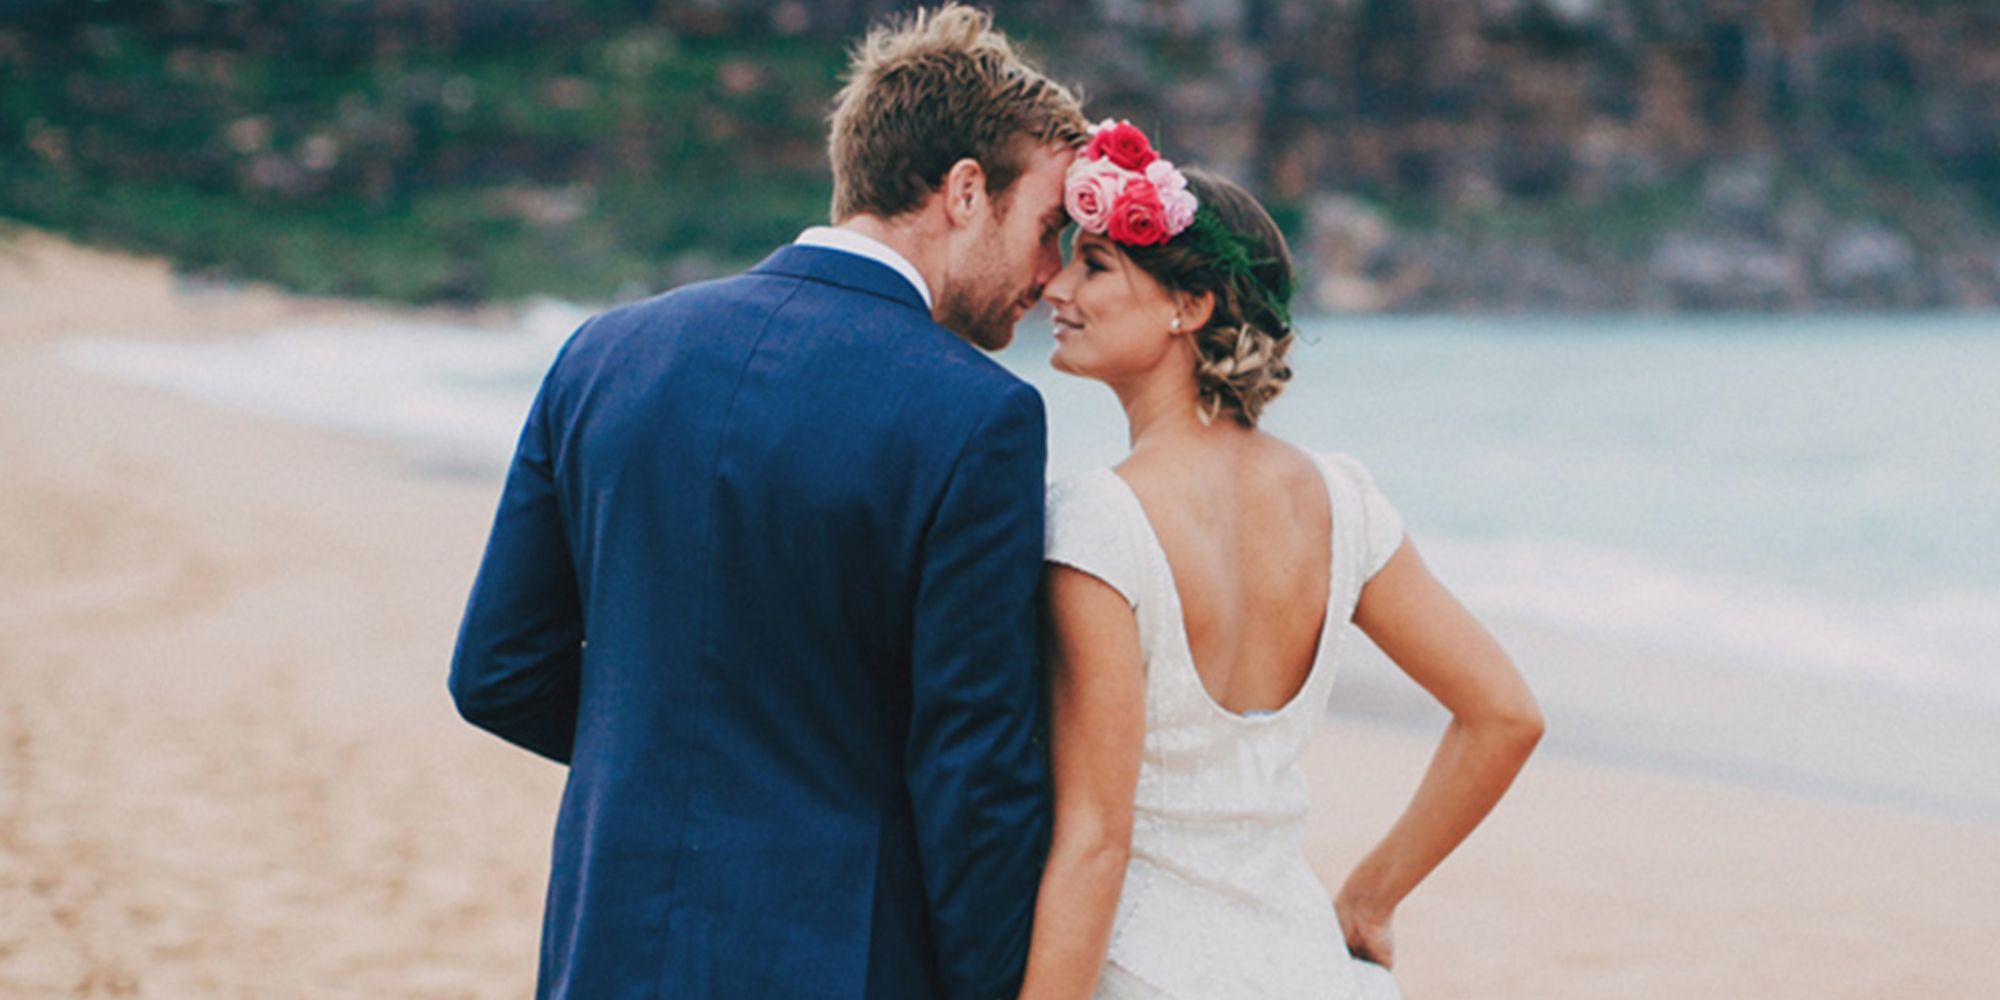 Wedding Preparation Your Step By Step Guide To Looking Flawless